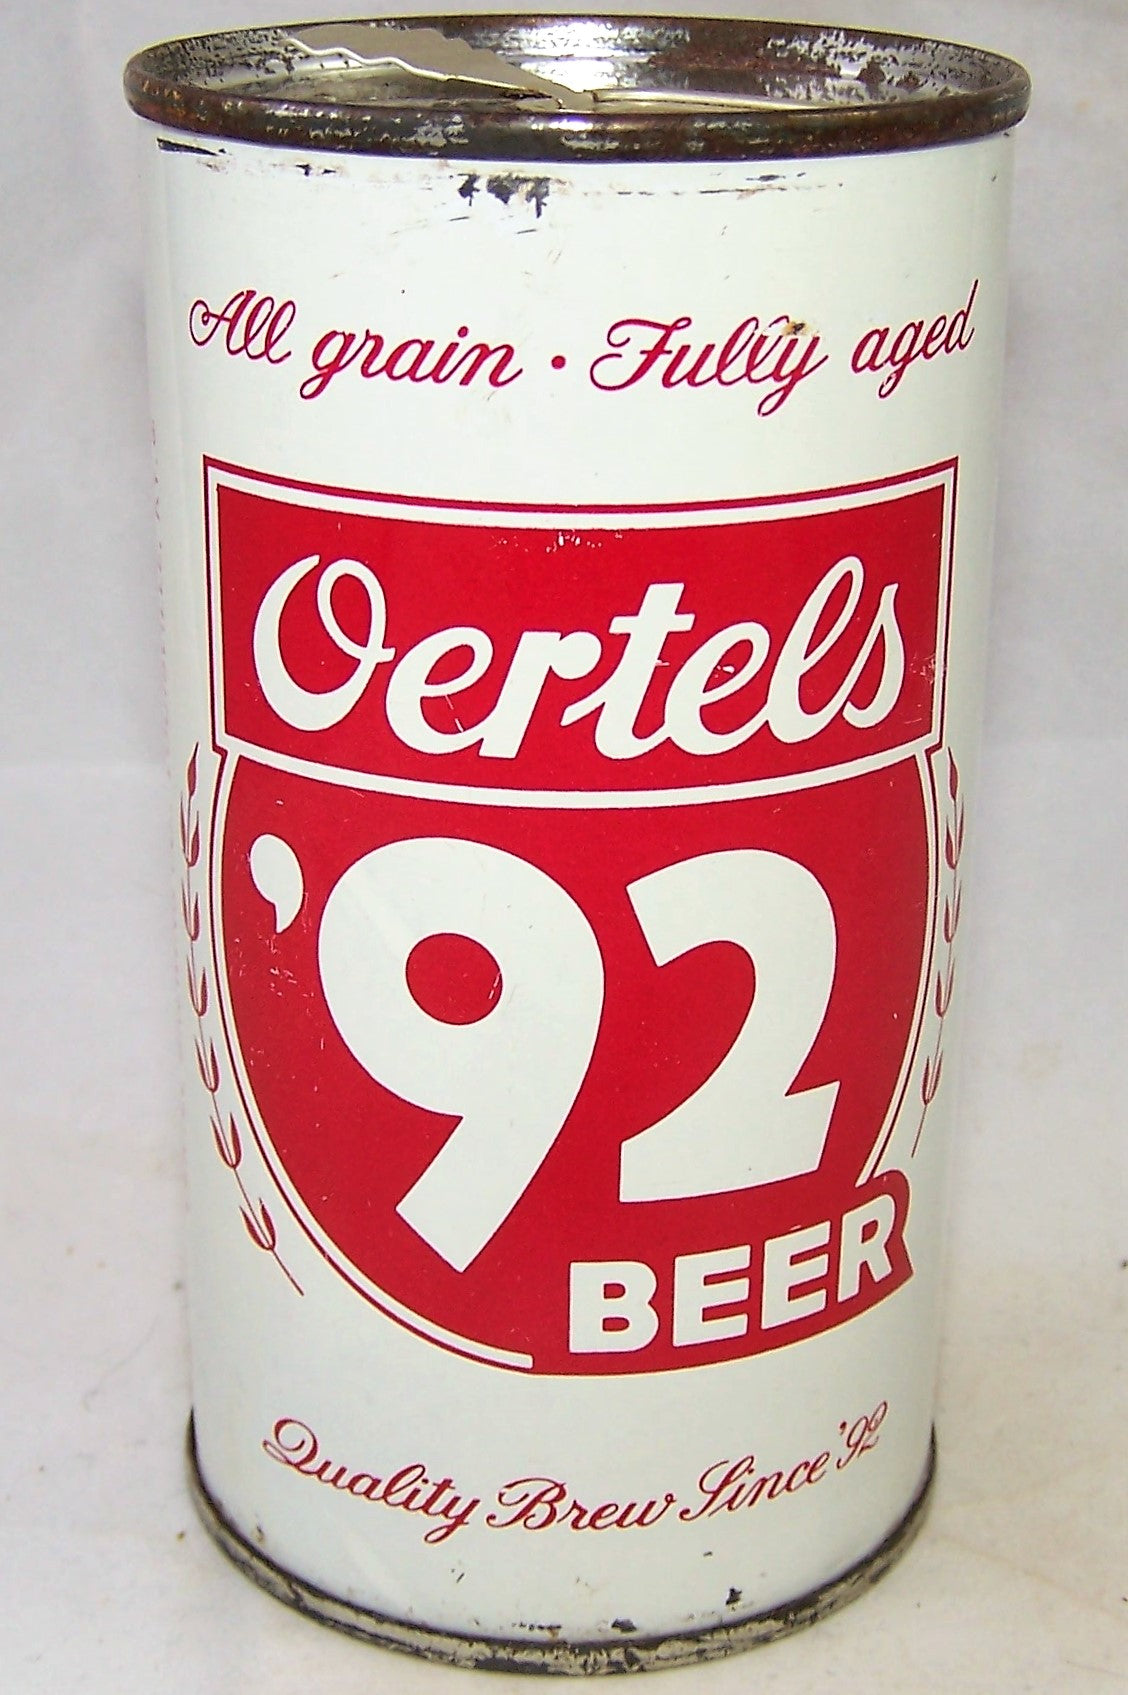 "Oertels 92 Beer ""Cheerful Refreshment"" USBC II 98-39, Grade 1"